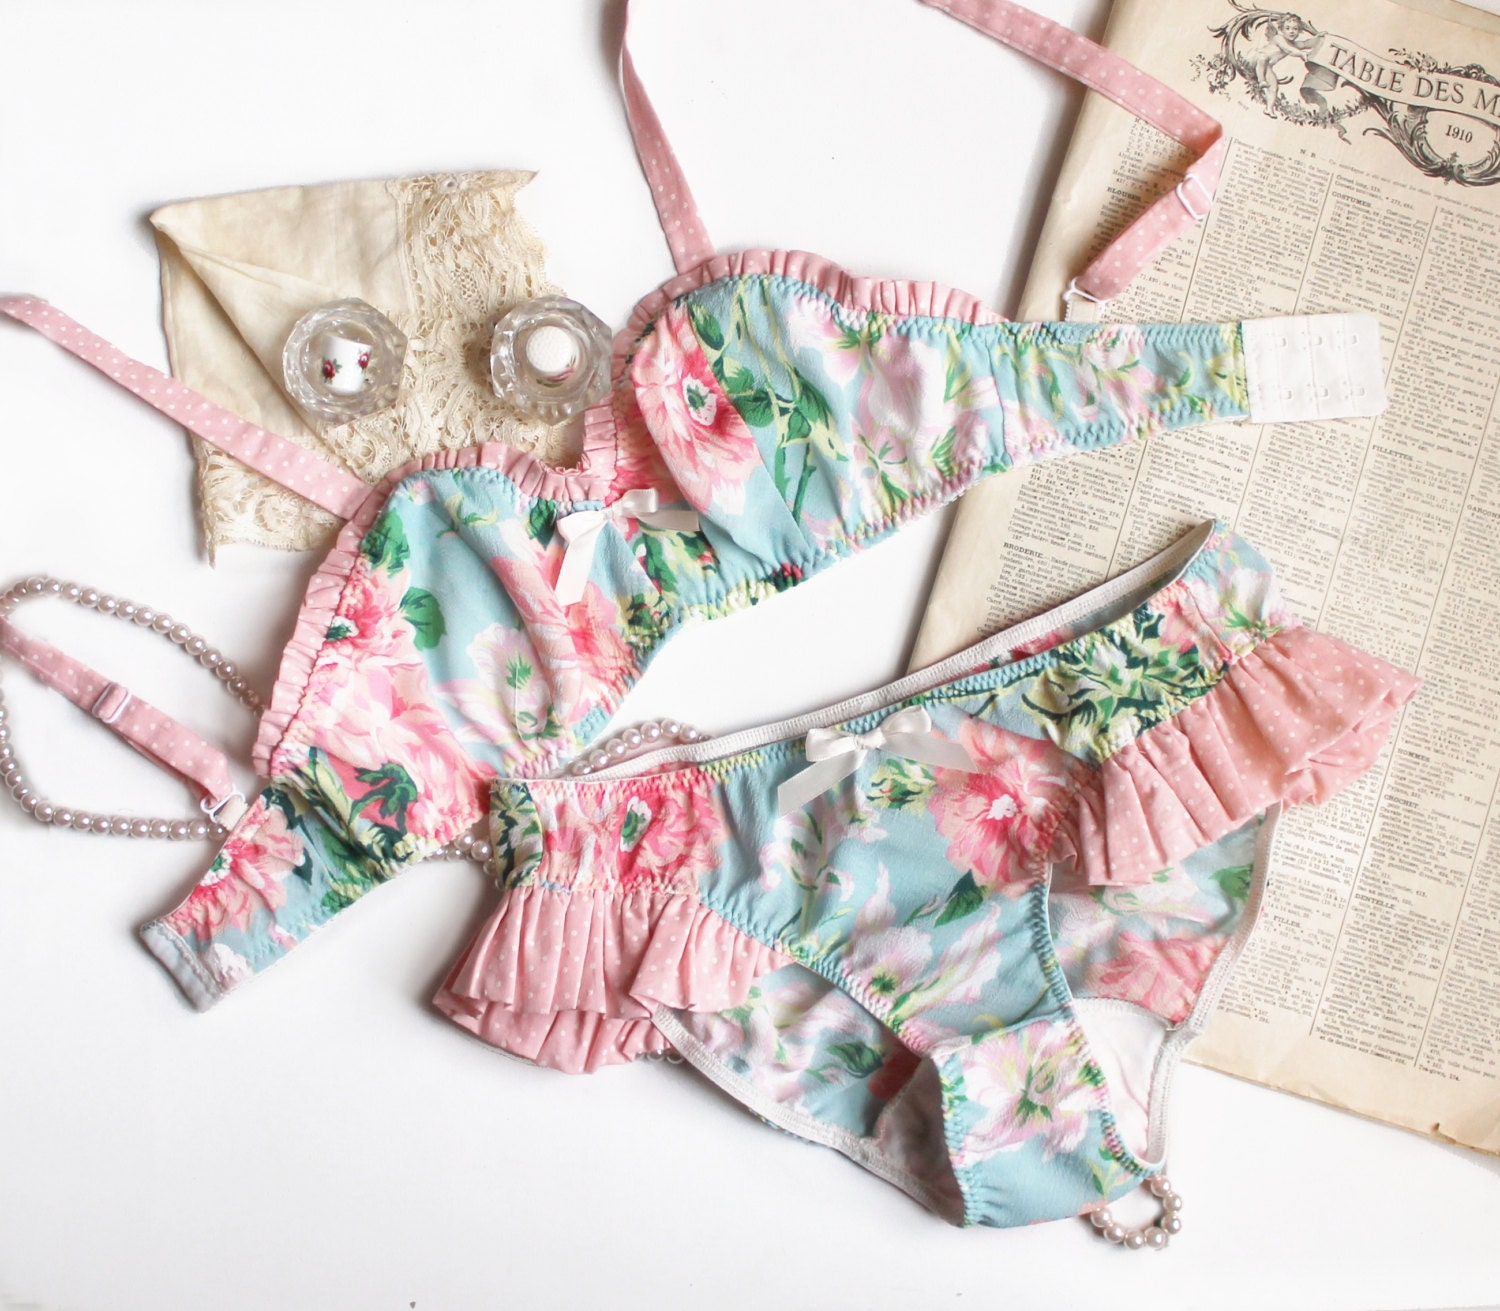 Bra and Panties Set 'Flora' in Mint and Pink Floral with Polka Dot Ruffle Detail Made to Order by Ohhh Lulu